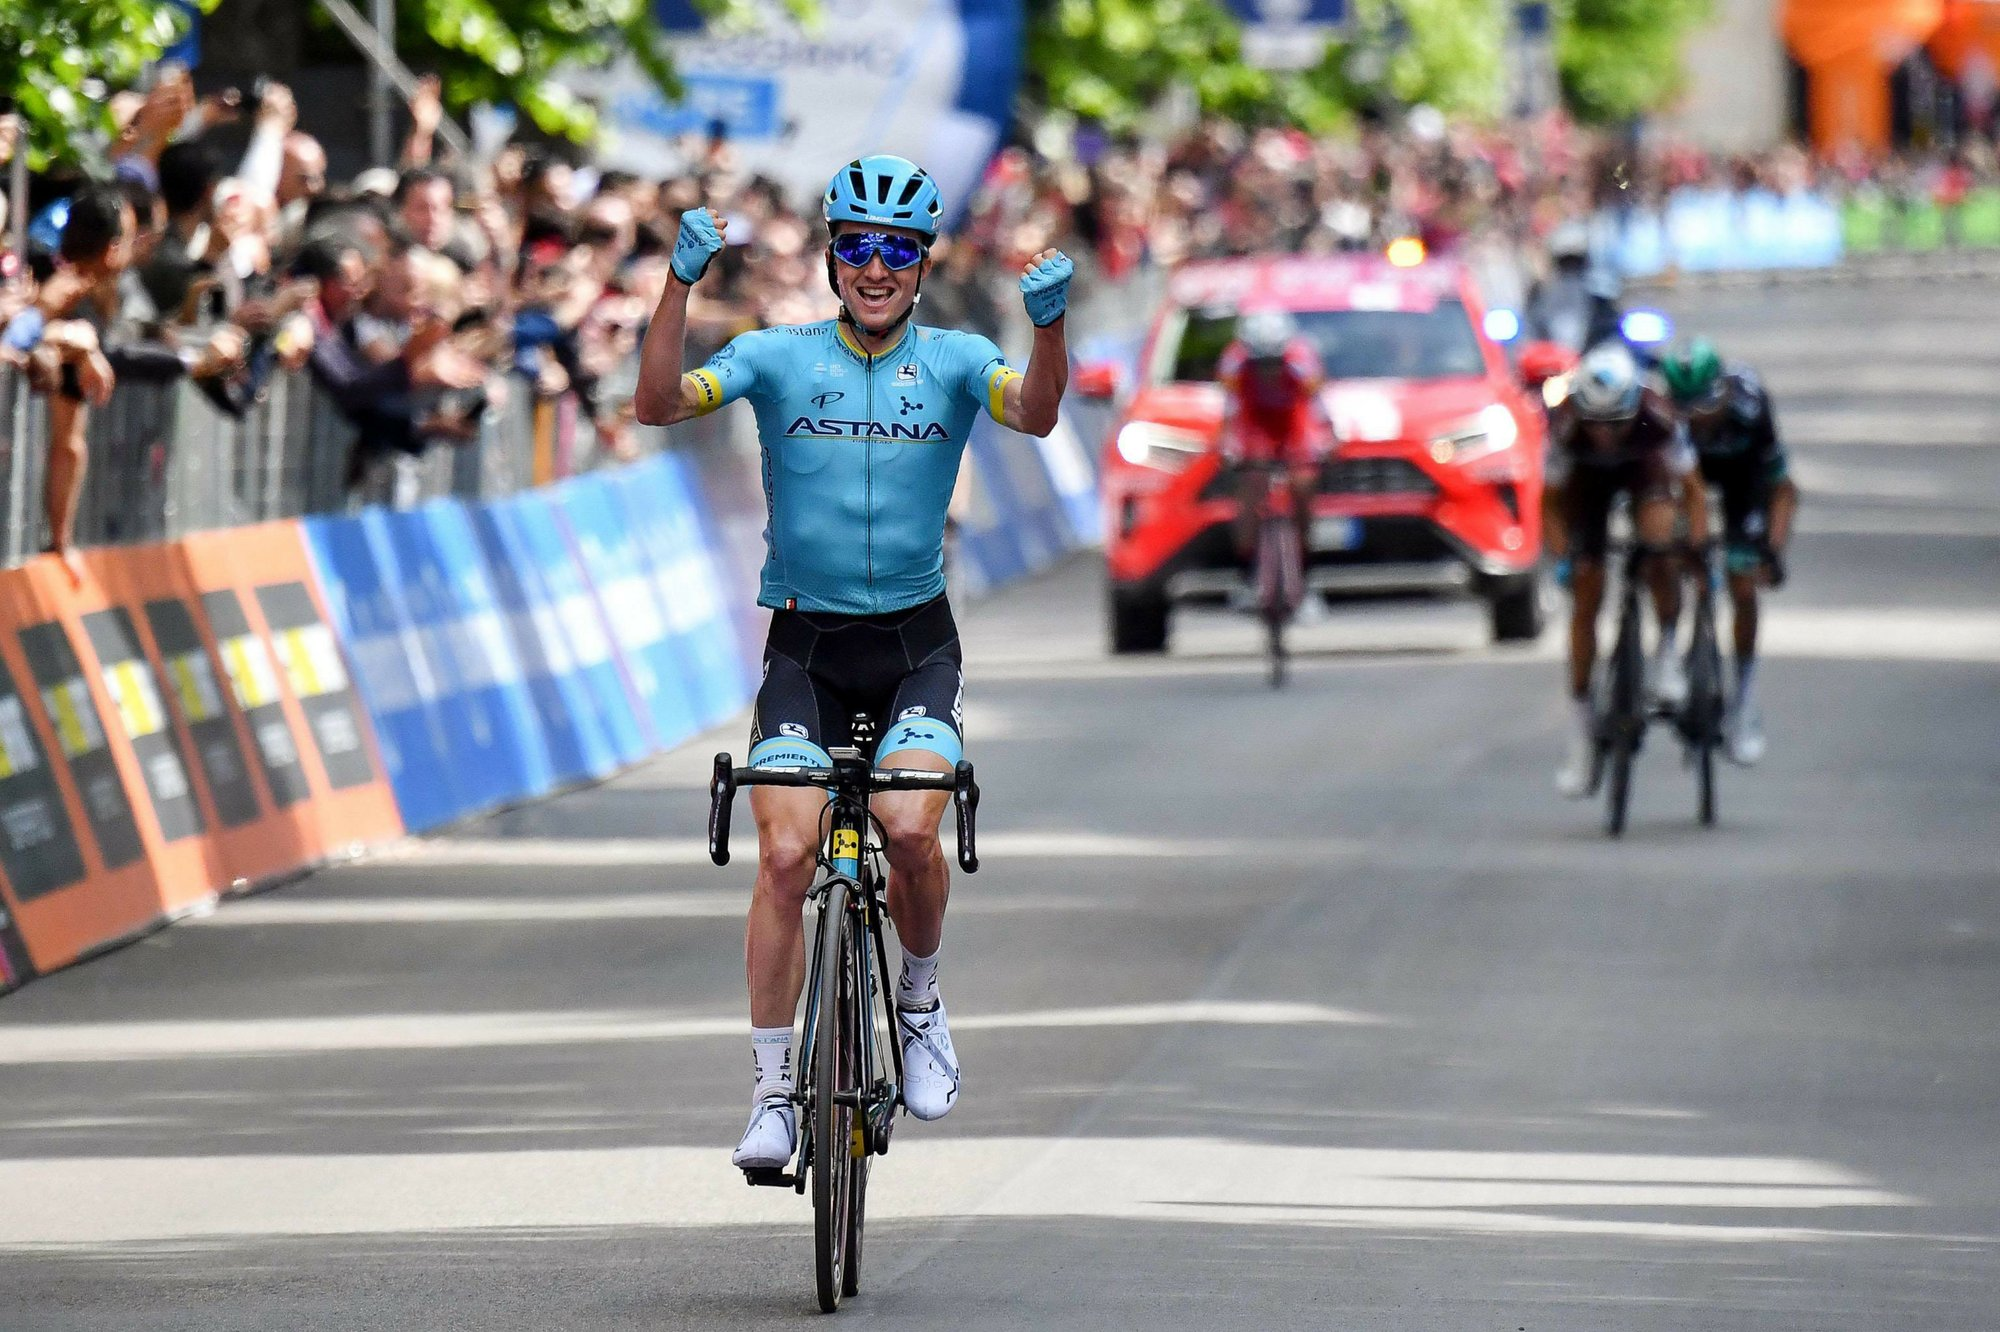 Bilbao wins Stage 7; Conti keeps pink jersey in Giro